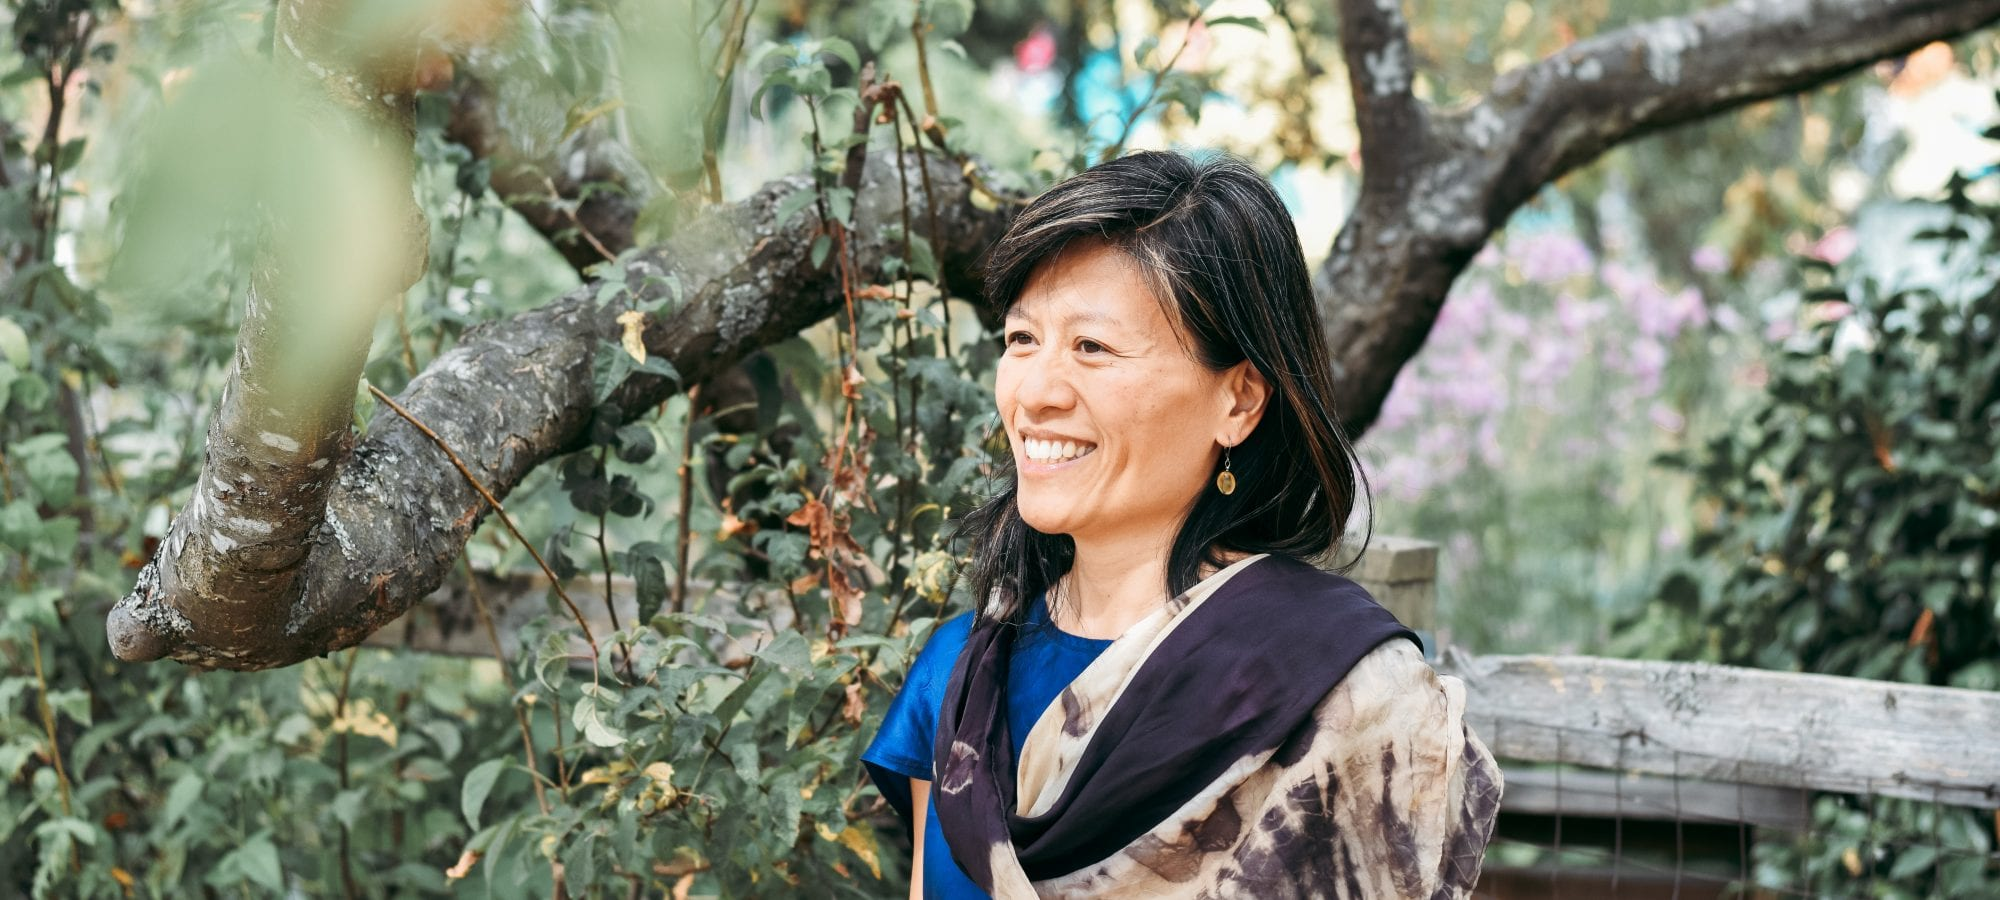 Daphne Woo, photo credit Rosemary March